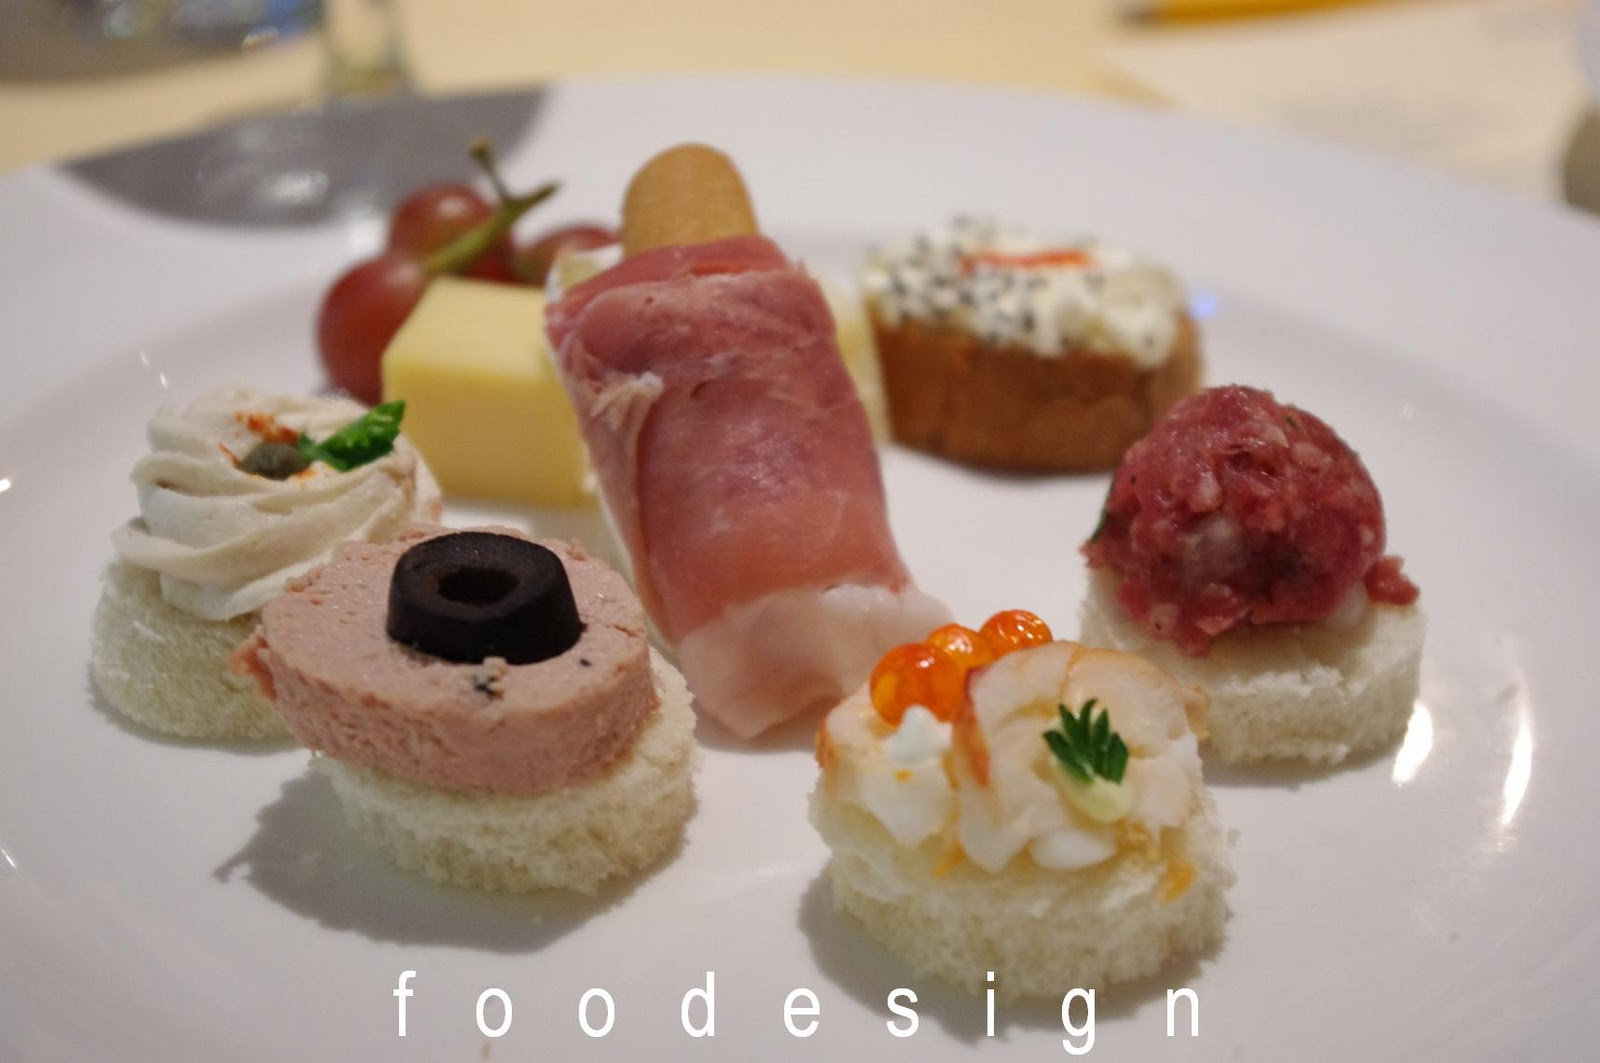 Foodesign cruise food presentations for Canape wines